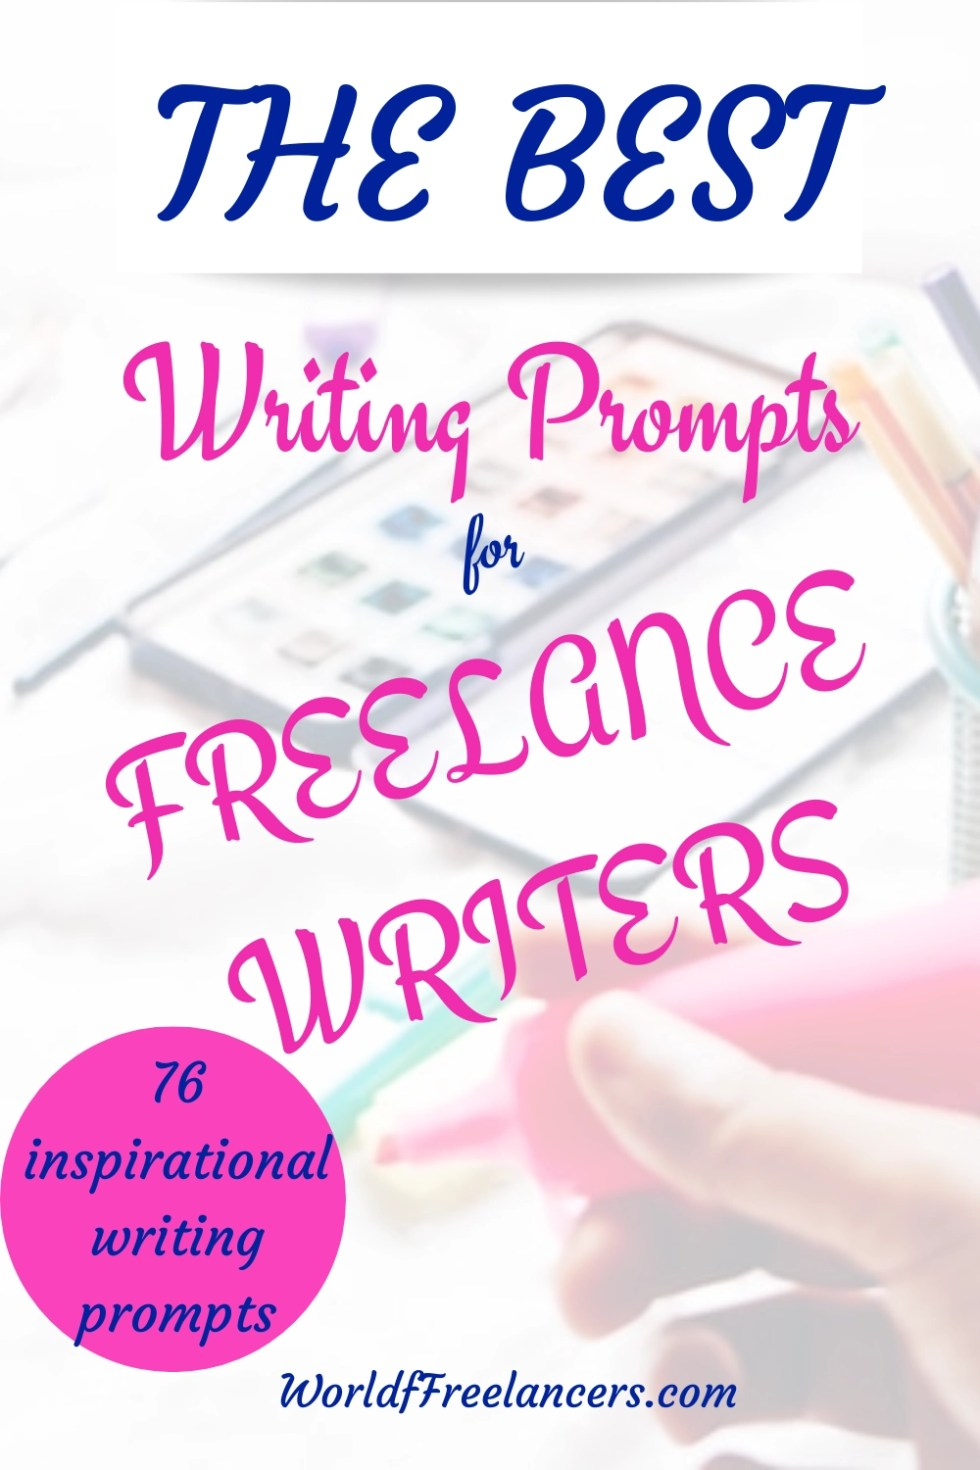 The best writing prompts for freelance writers Pinterest image